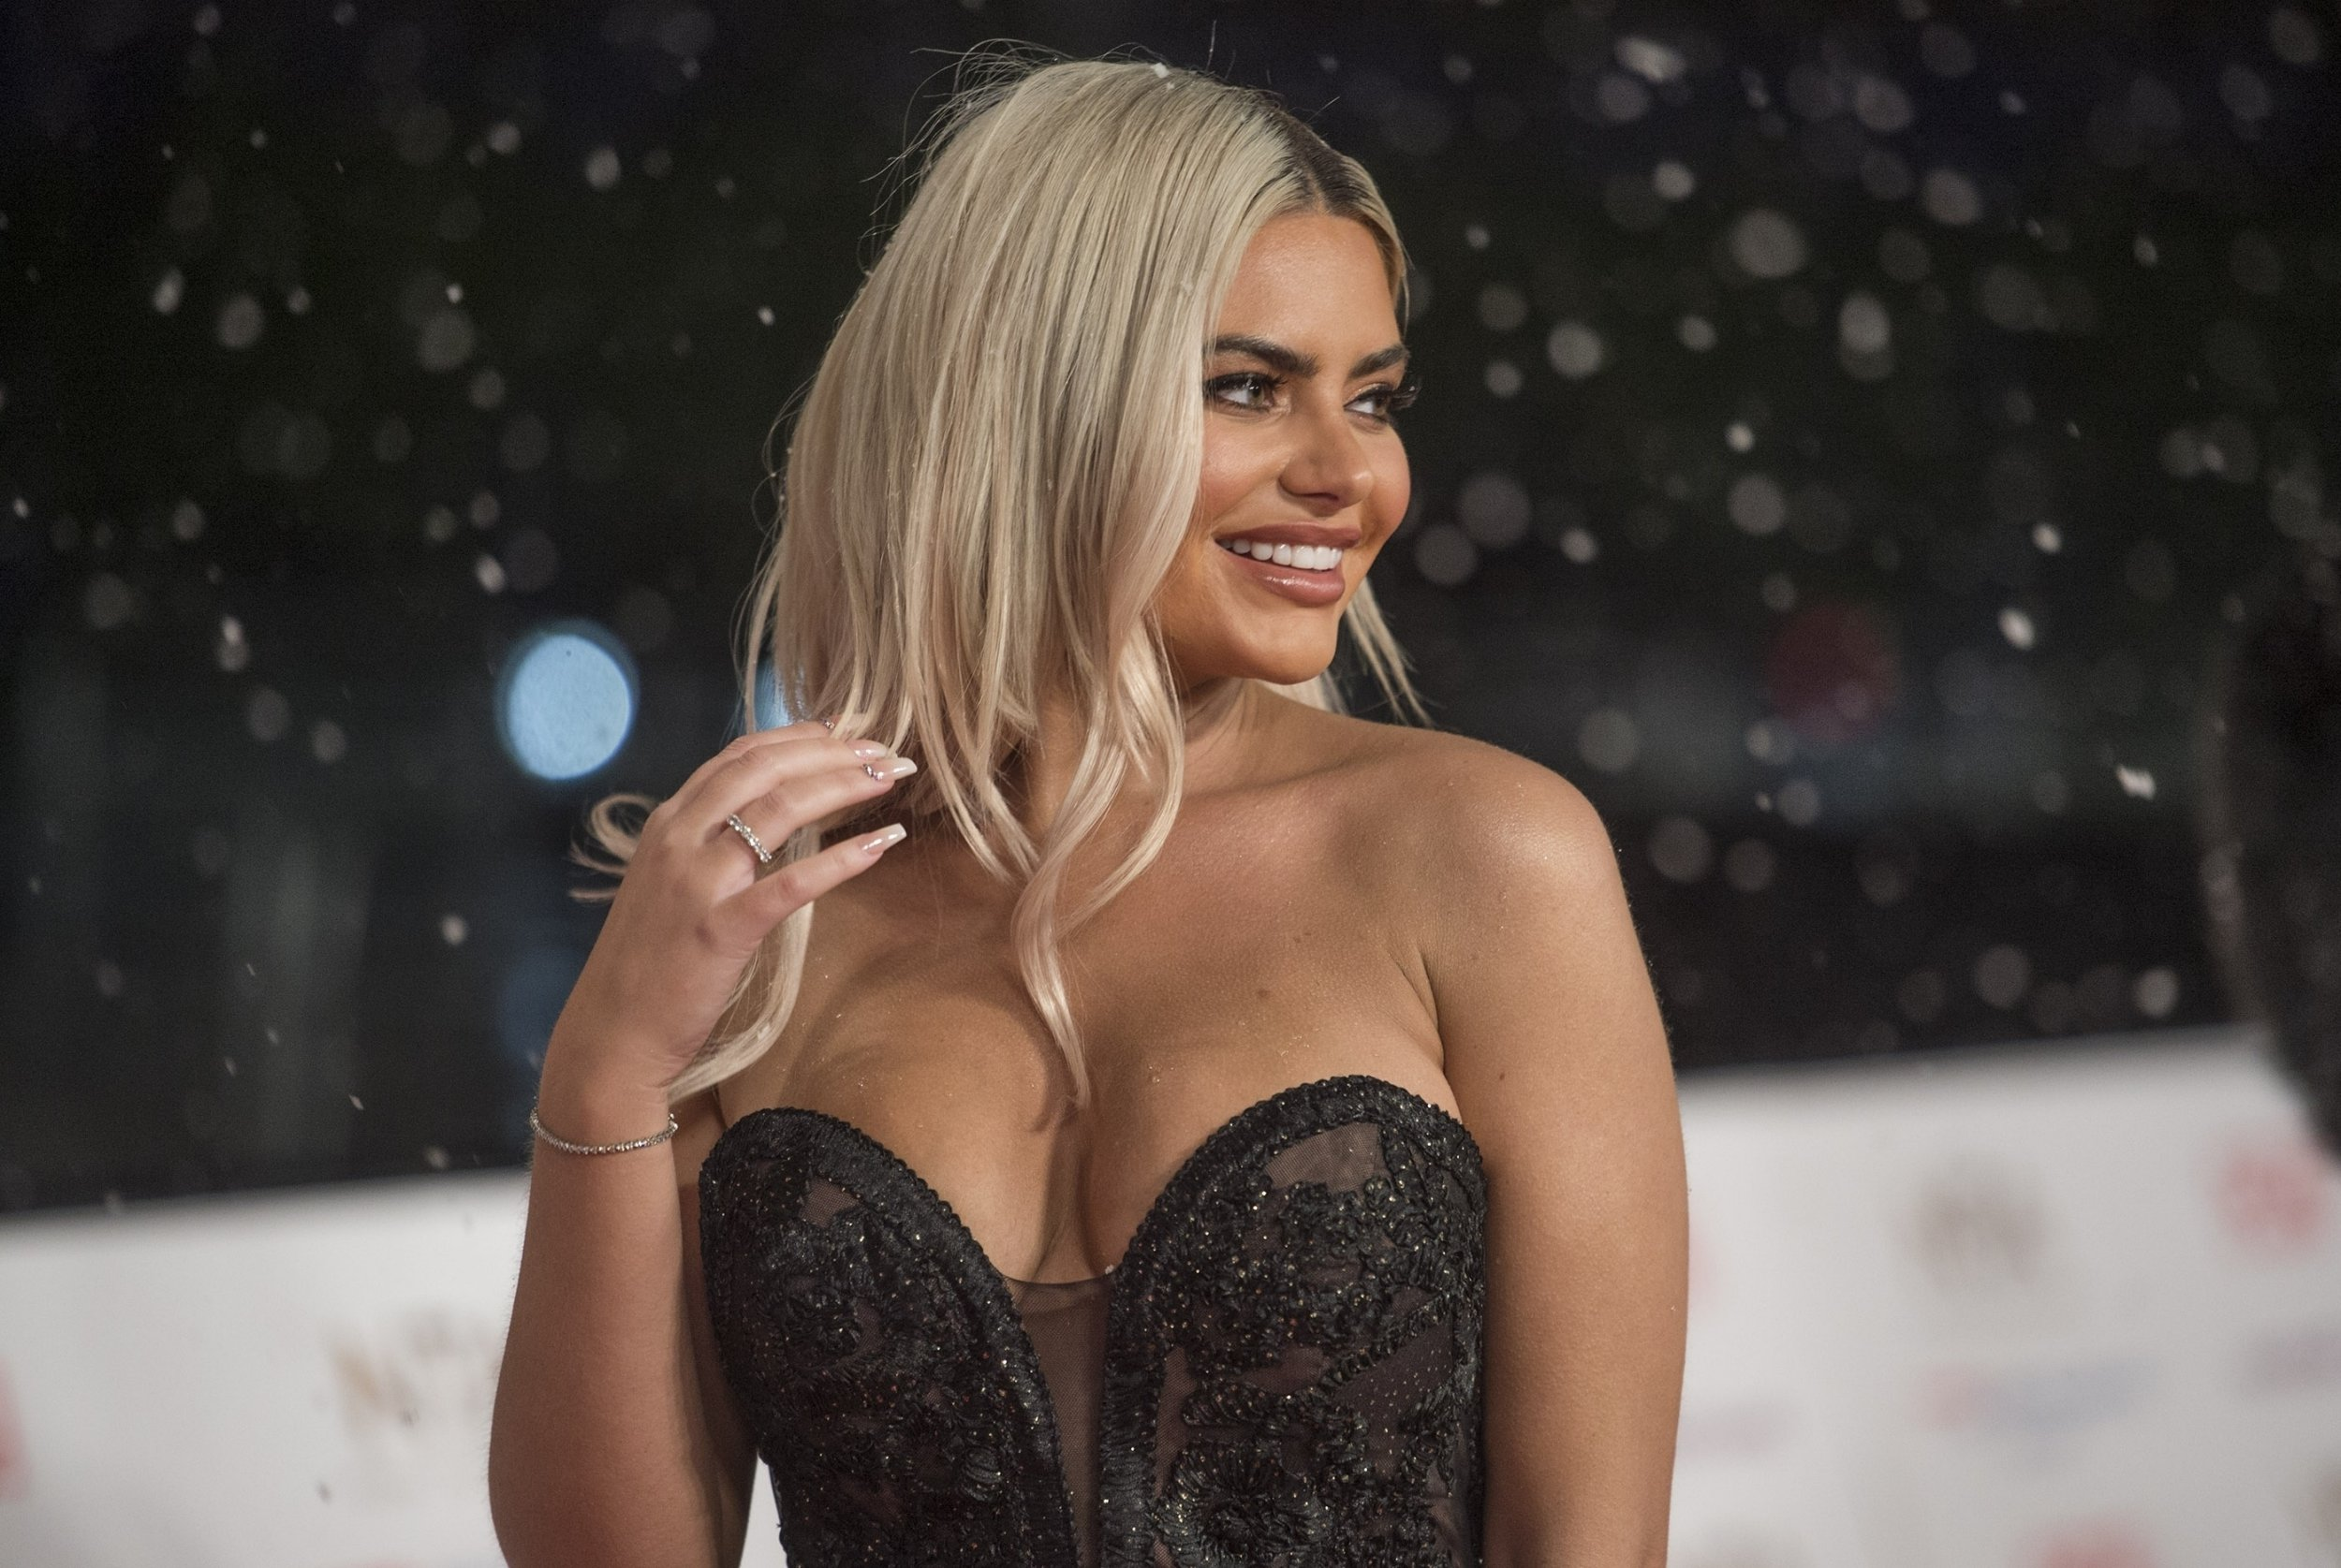 BGUK_1464031 - London, UNITED KINGDOM - Celebrities attend the National Television Awards held at The O2 Arena in London. Pictured: Megan Barton Hanson BACKGRID UK 22 JANUARY 2019 BYLINE MUST READ: TIMMSY / BACKGRID UK: +44 208 344 2007 / uksales@backgrid.com USA: +1 310 798 9111 / usasales@backgrid.com *UK Clients - Pictures Containing Children Please Pixelate Face Prior To Publication*